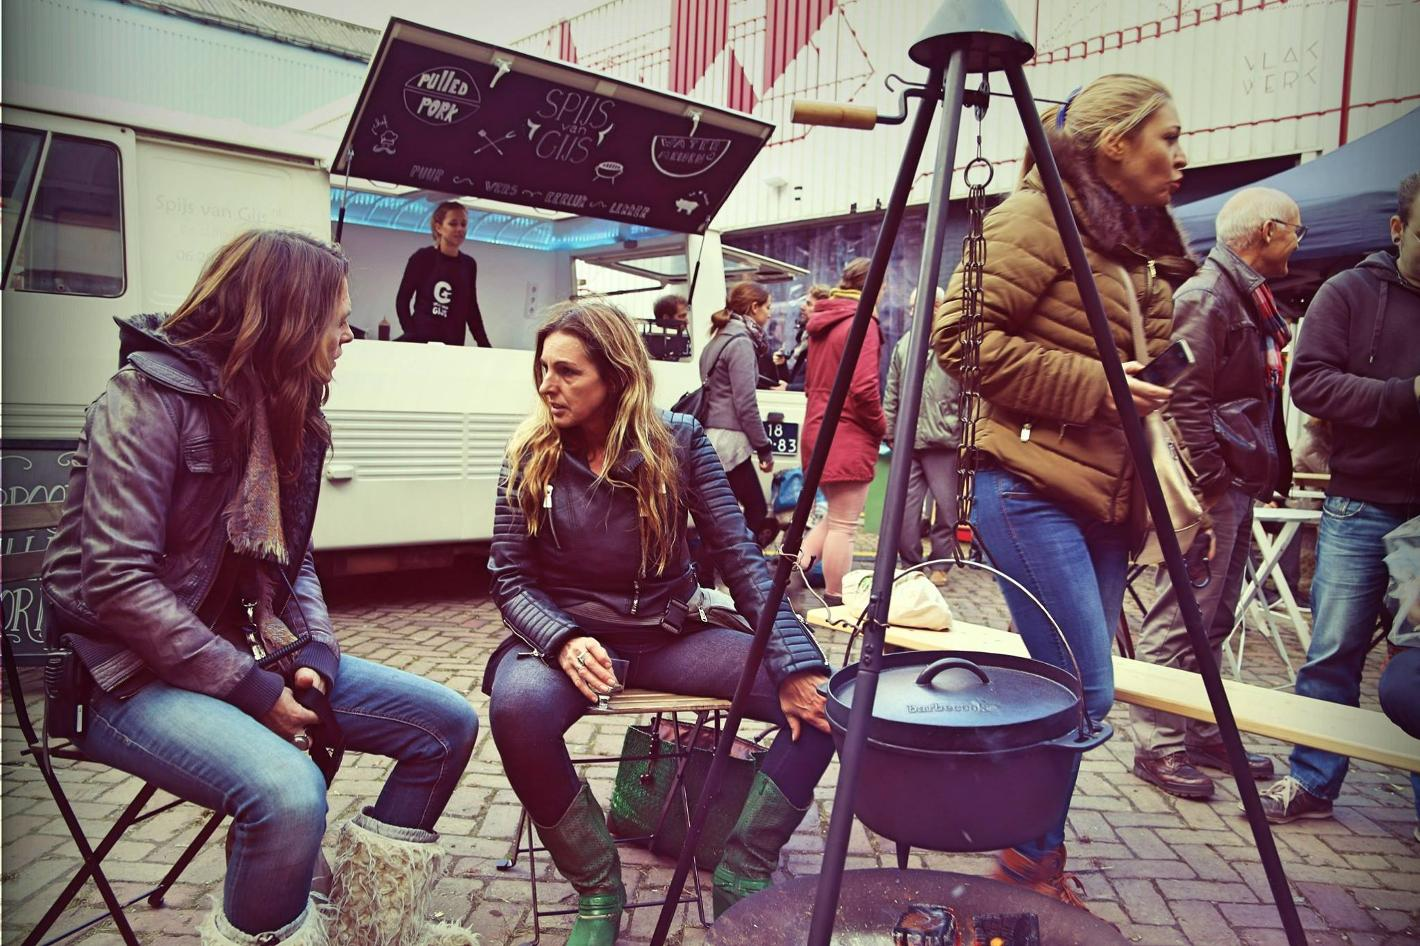 Photo FeelGood Market in Eindhoven, View, Delicacy, Drink, Event - #2